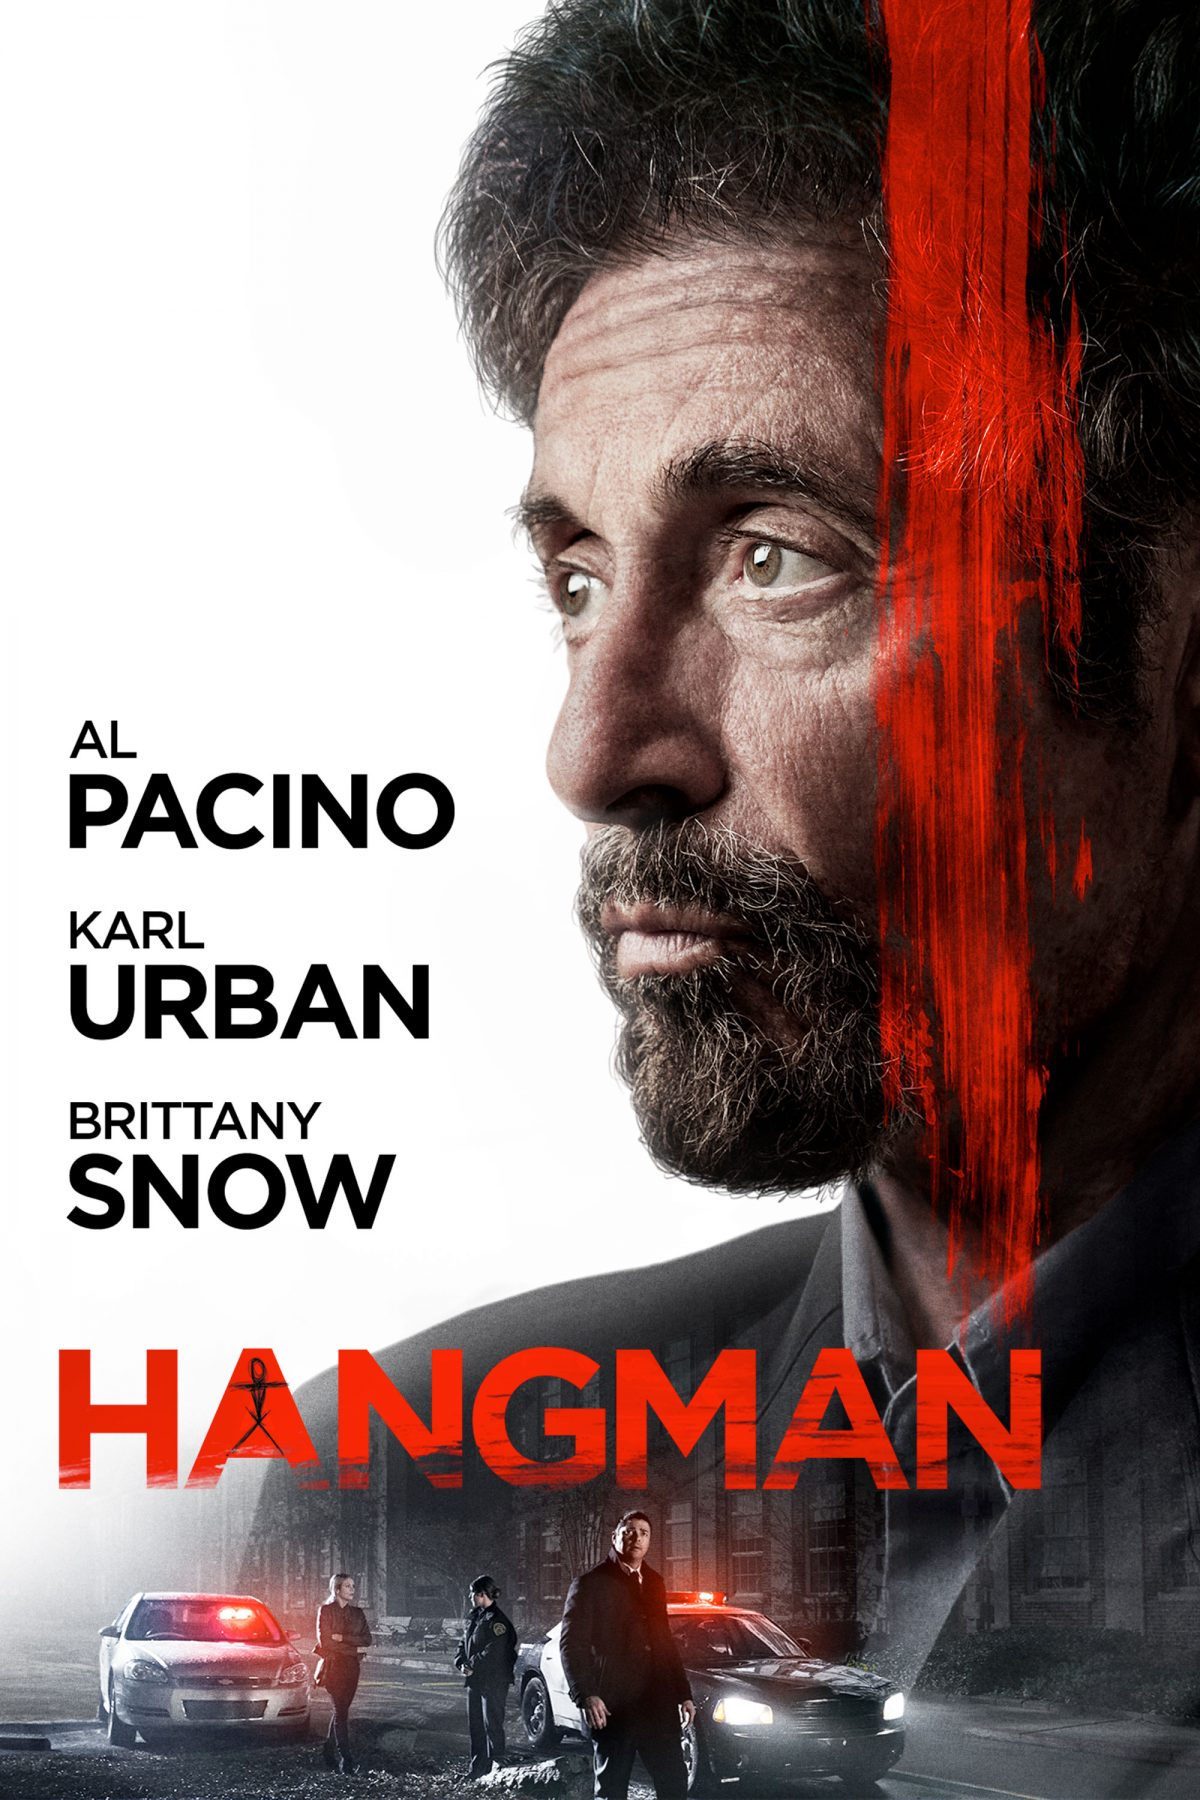 Al Pacino, Karl Urban & Brittany Snow star in Hangman, #BlazingMinds bring you our thoughts on this new thriller, which is out now.